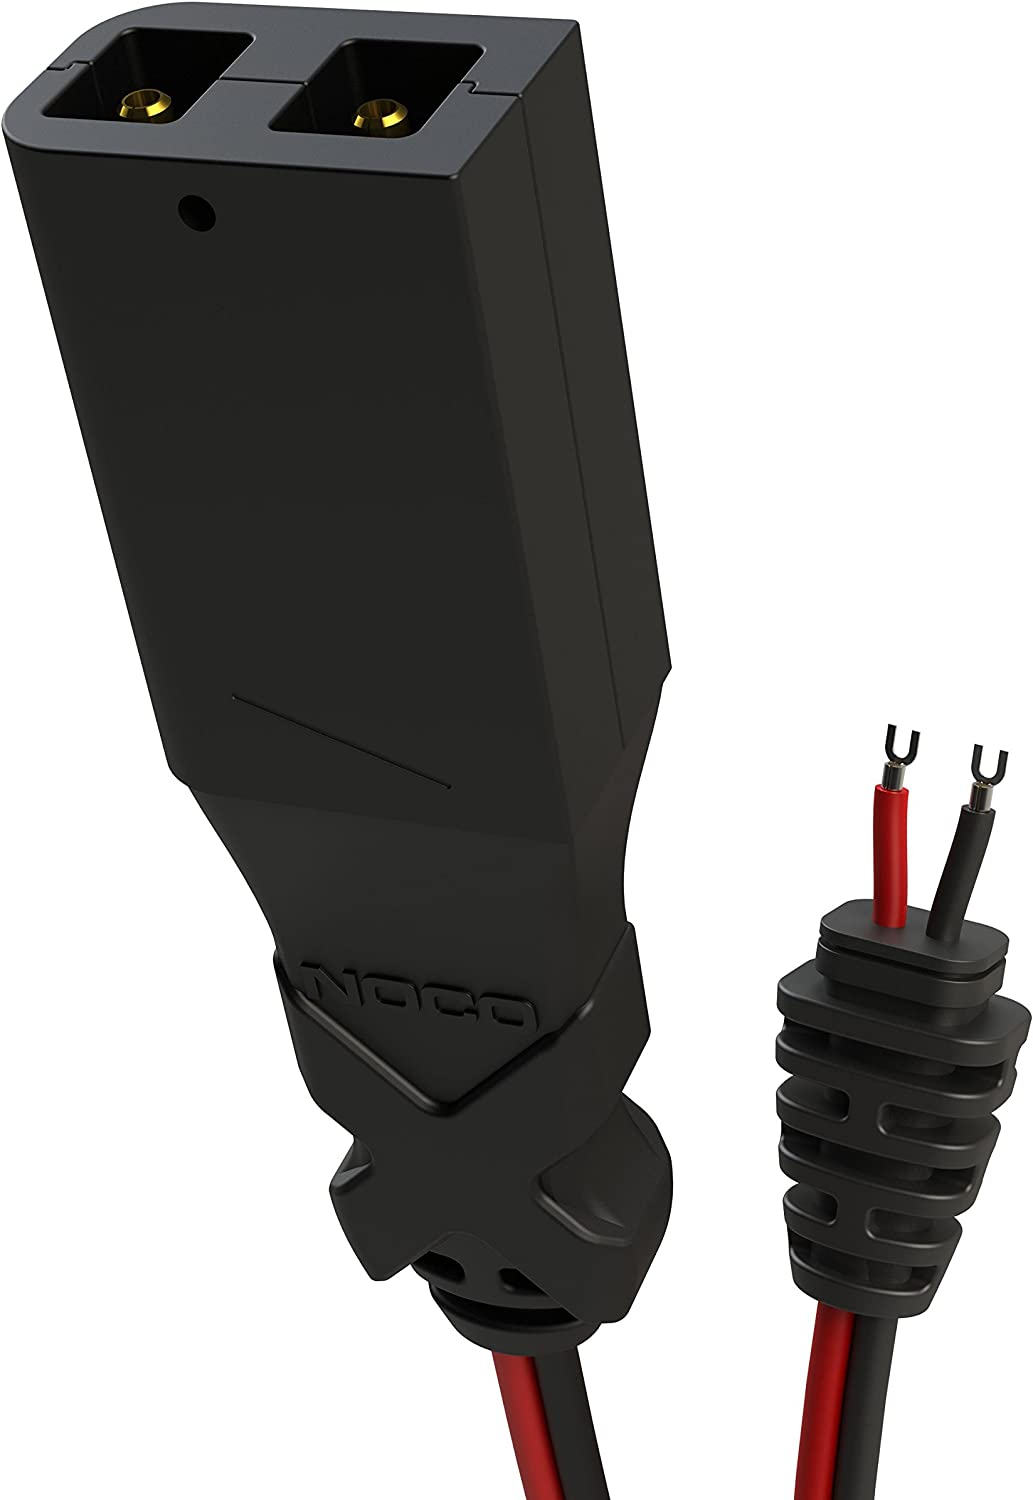 NOCO GXC009 Powerwise D-Plug Connector Cable For NOCO Genius GX Series Industrial Battery Chargers